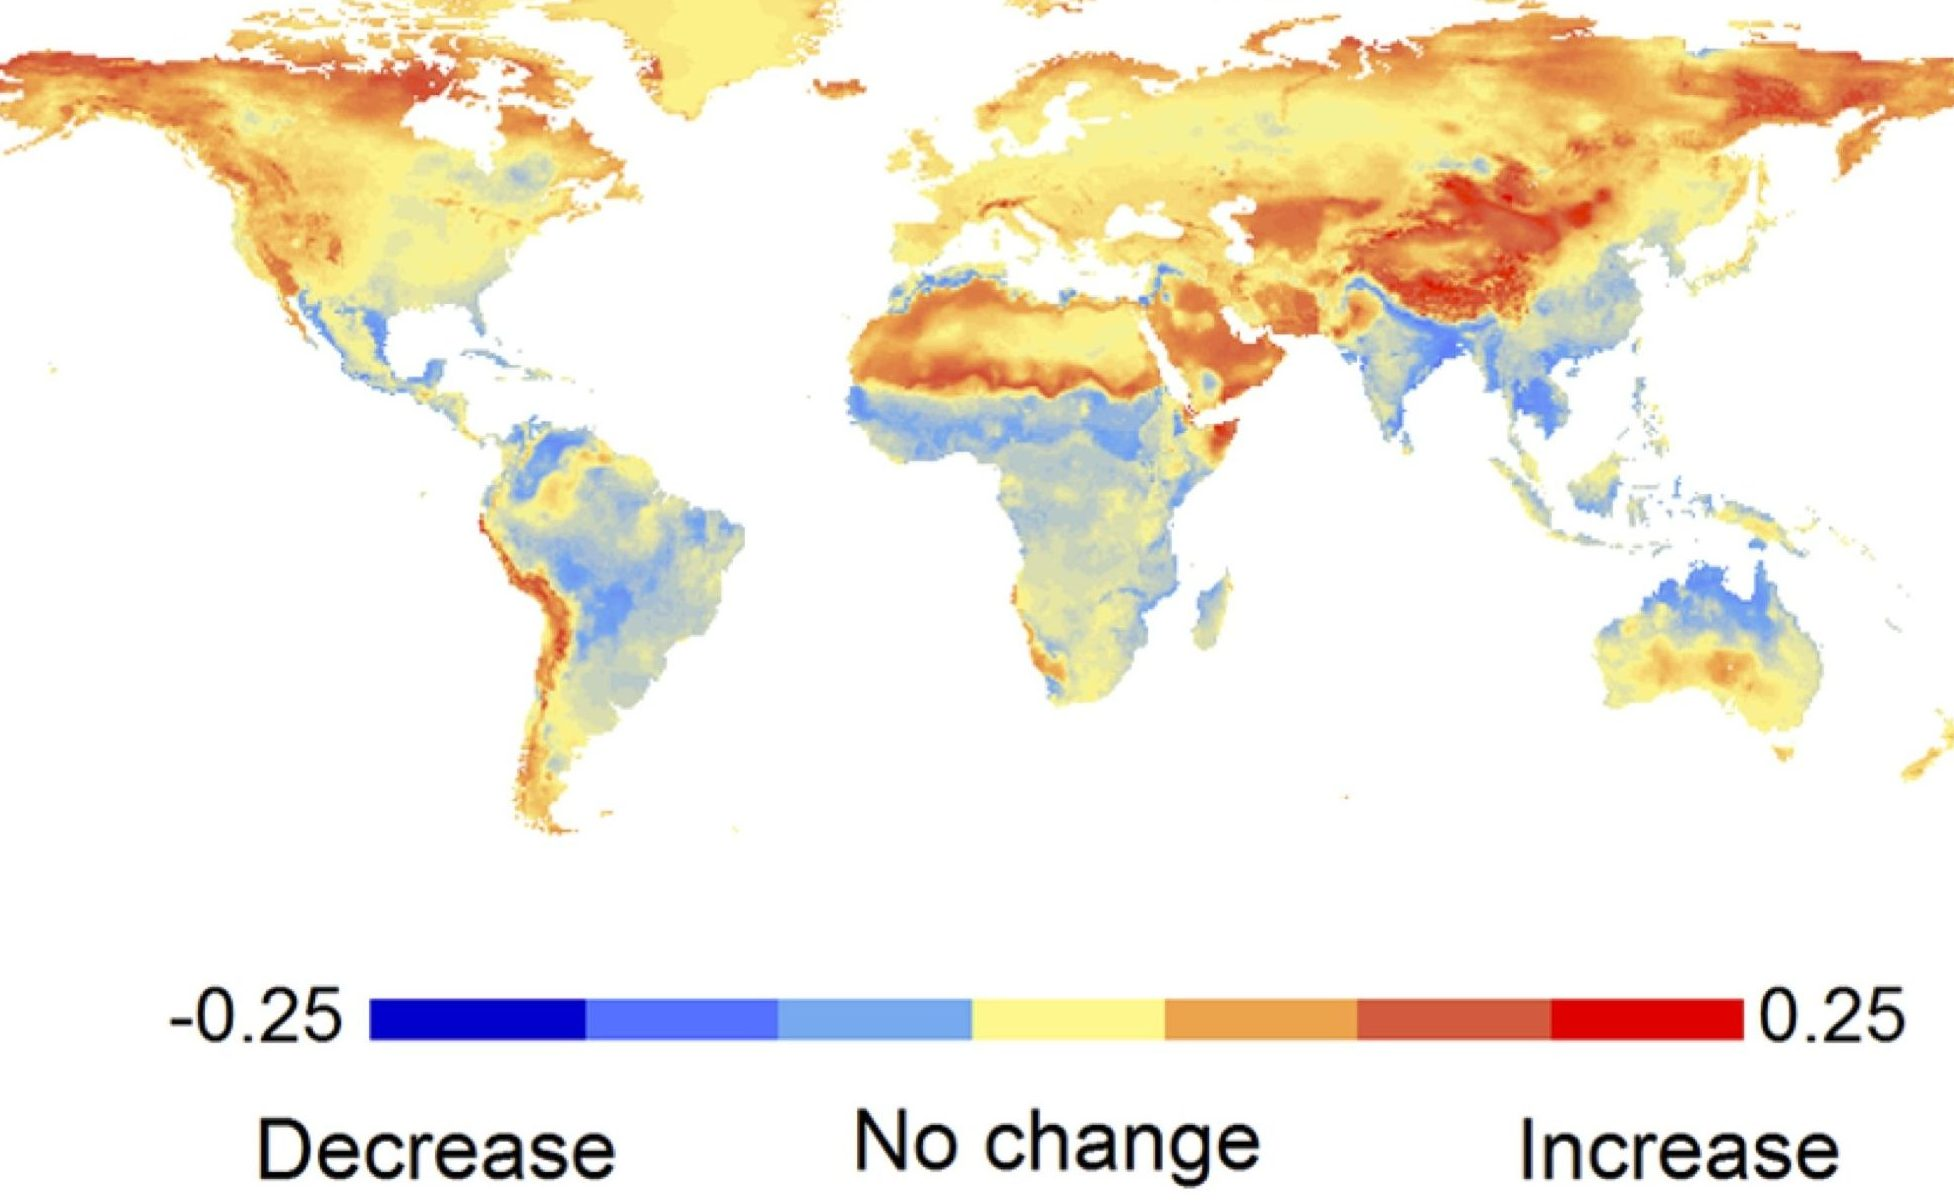 Projected change in fire probability from 1971-2000 to 2070-2099 for the high SRES-A2 emissions scenario using a statistical method and climate models. From Moritz et al. (2012).